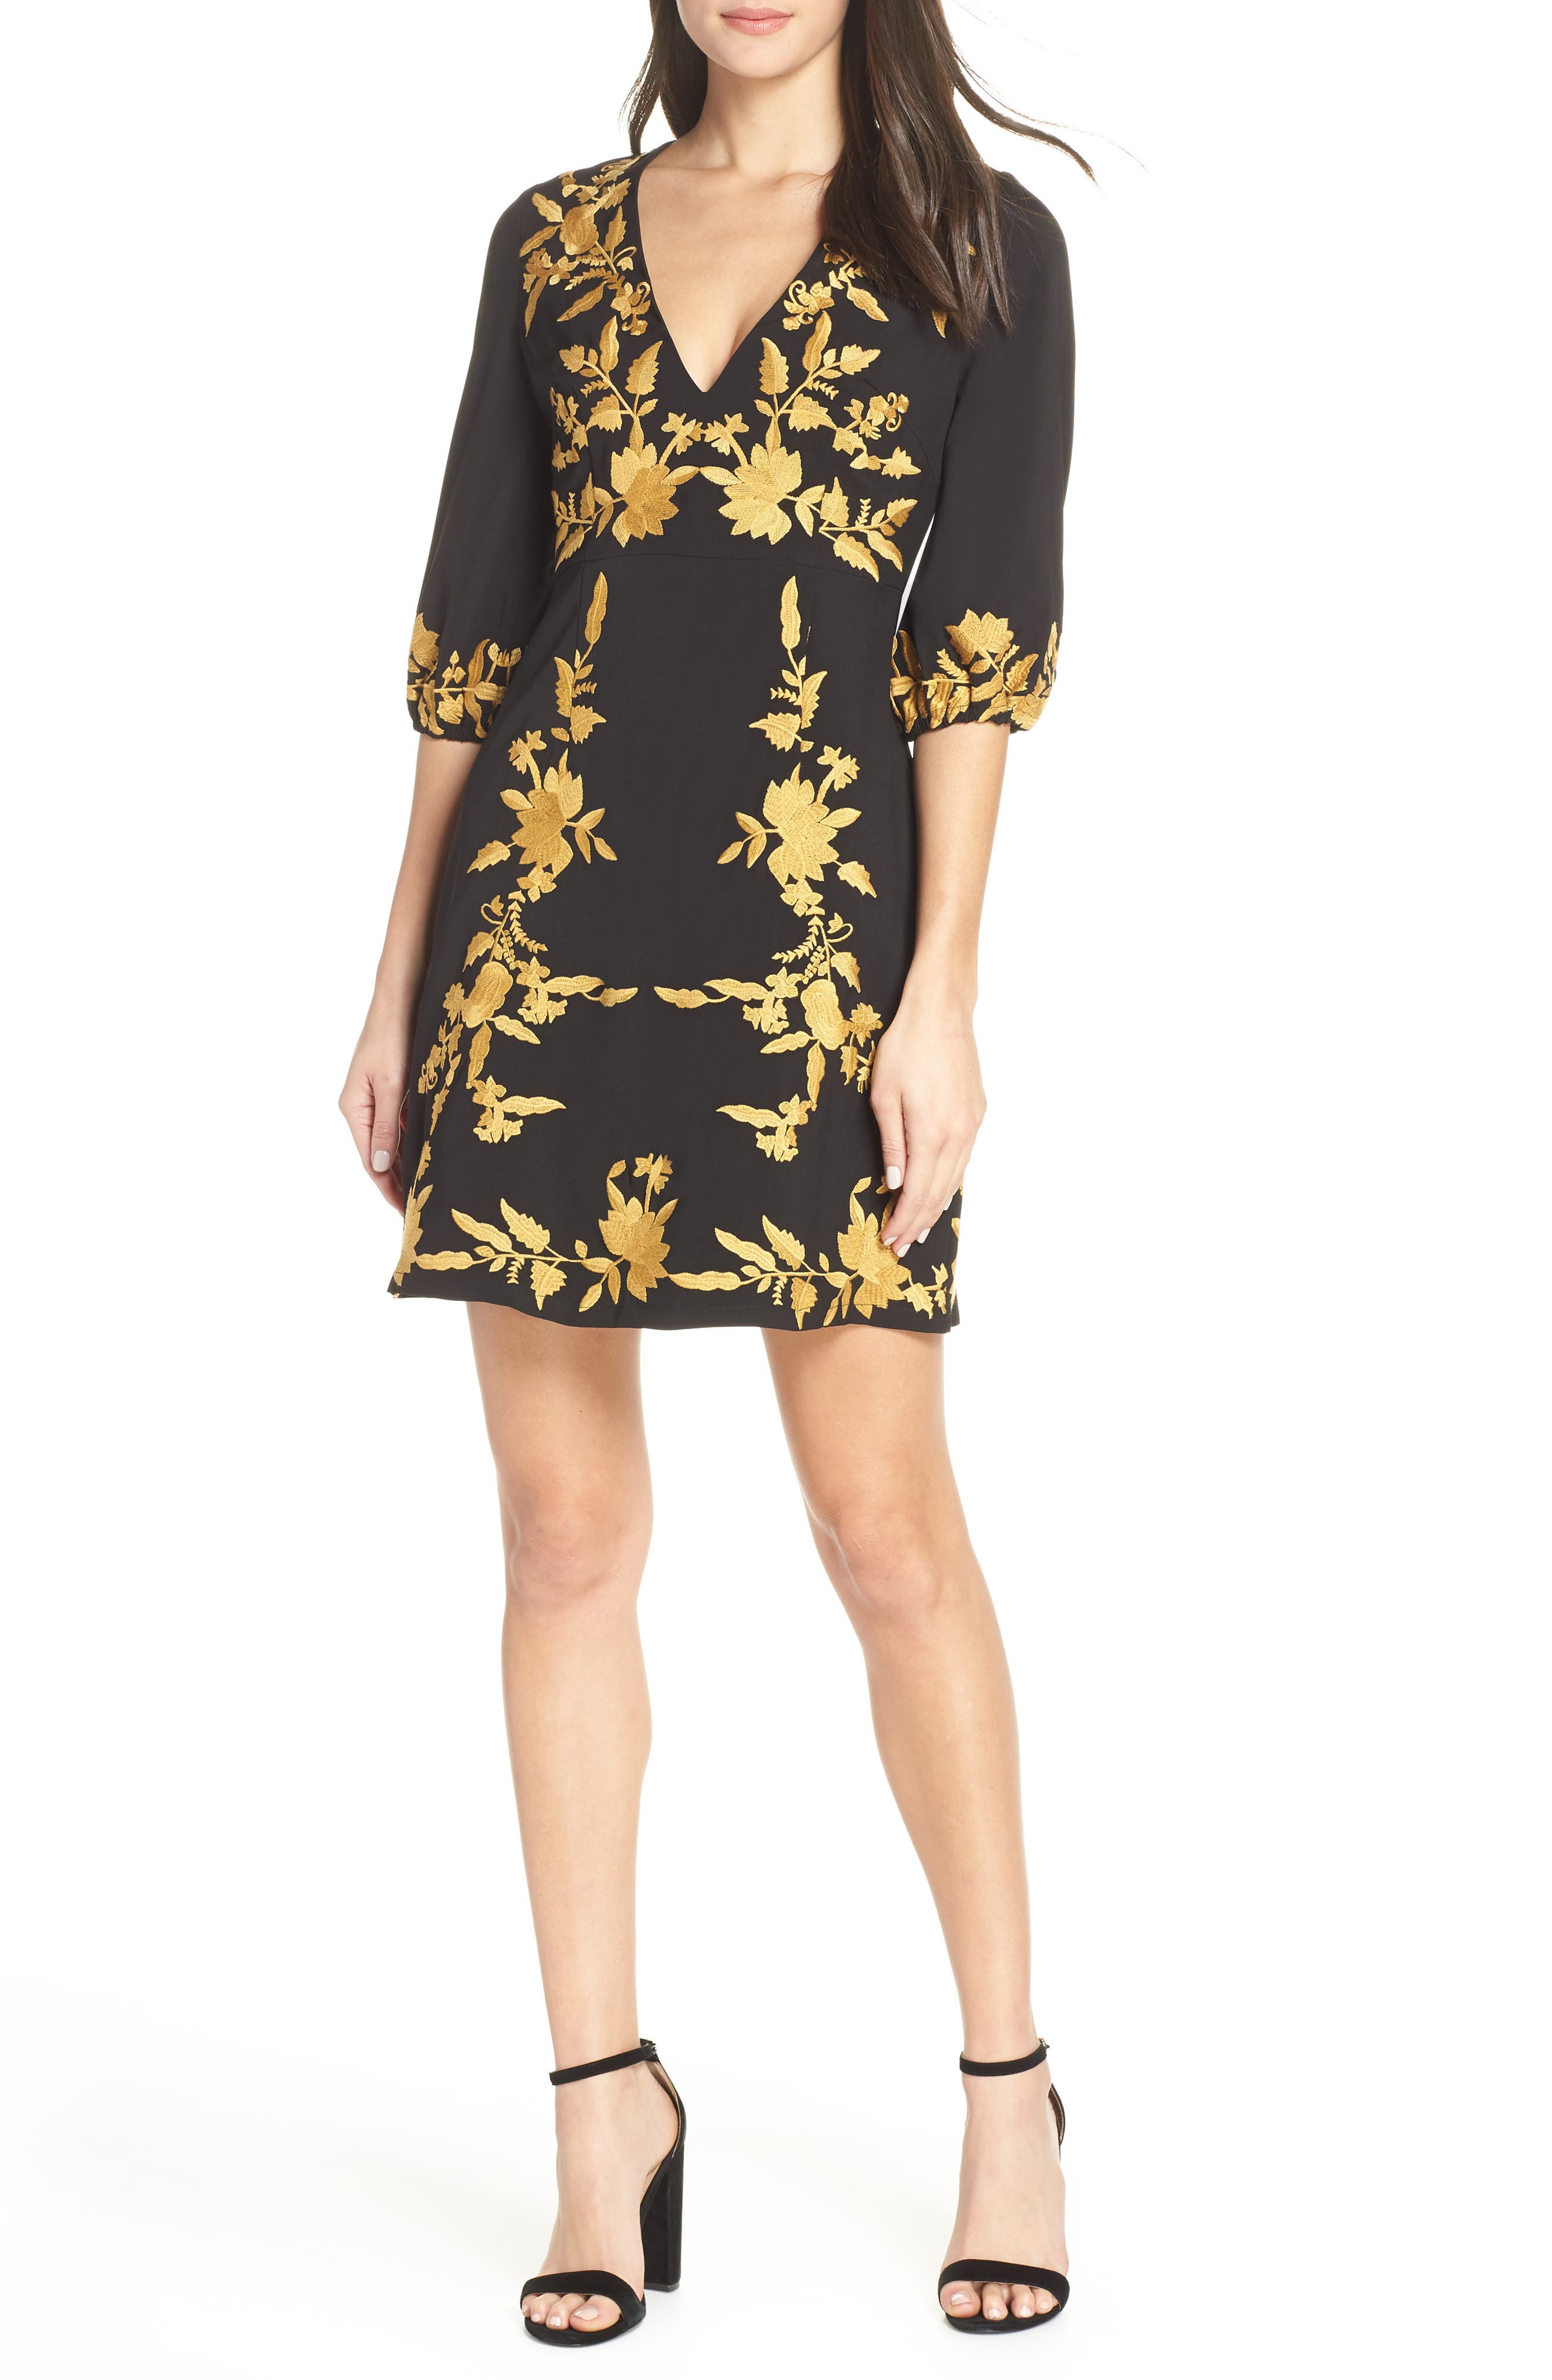 FOXIEDOX, Melia Embroidered Cocktail Dress, Main thumbnail 1, color, 001